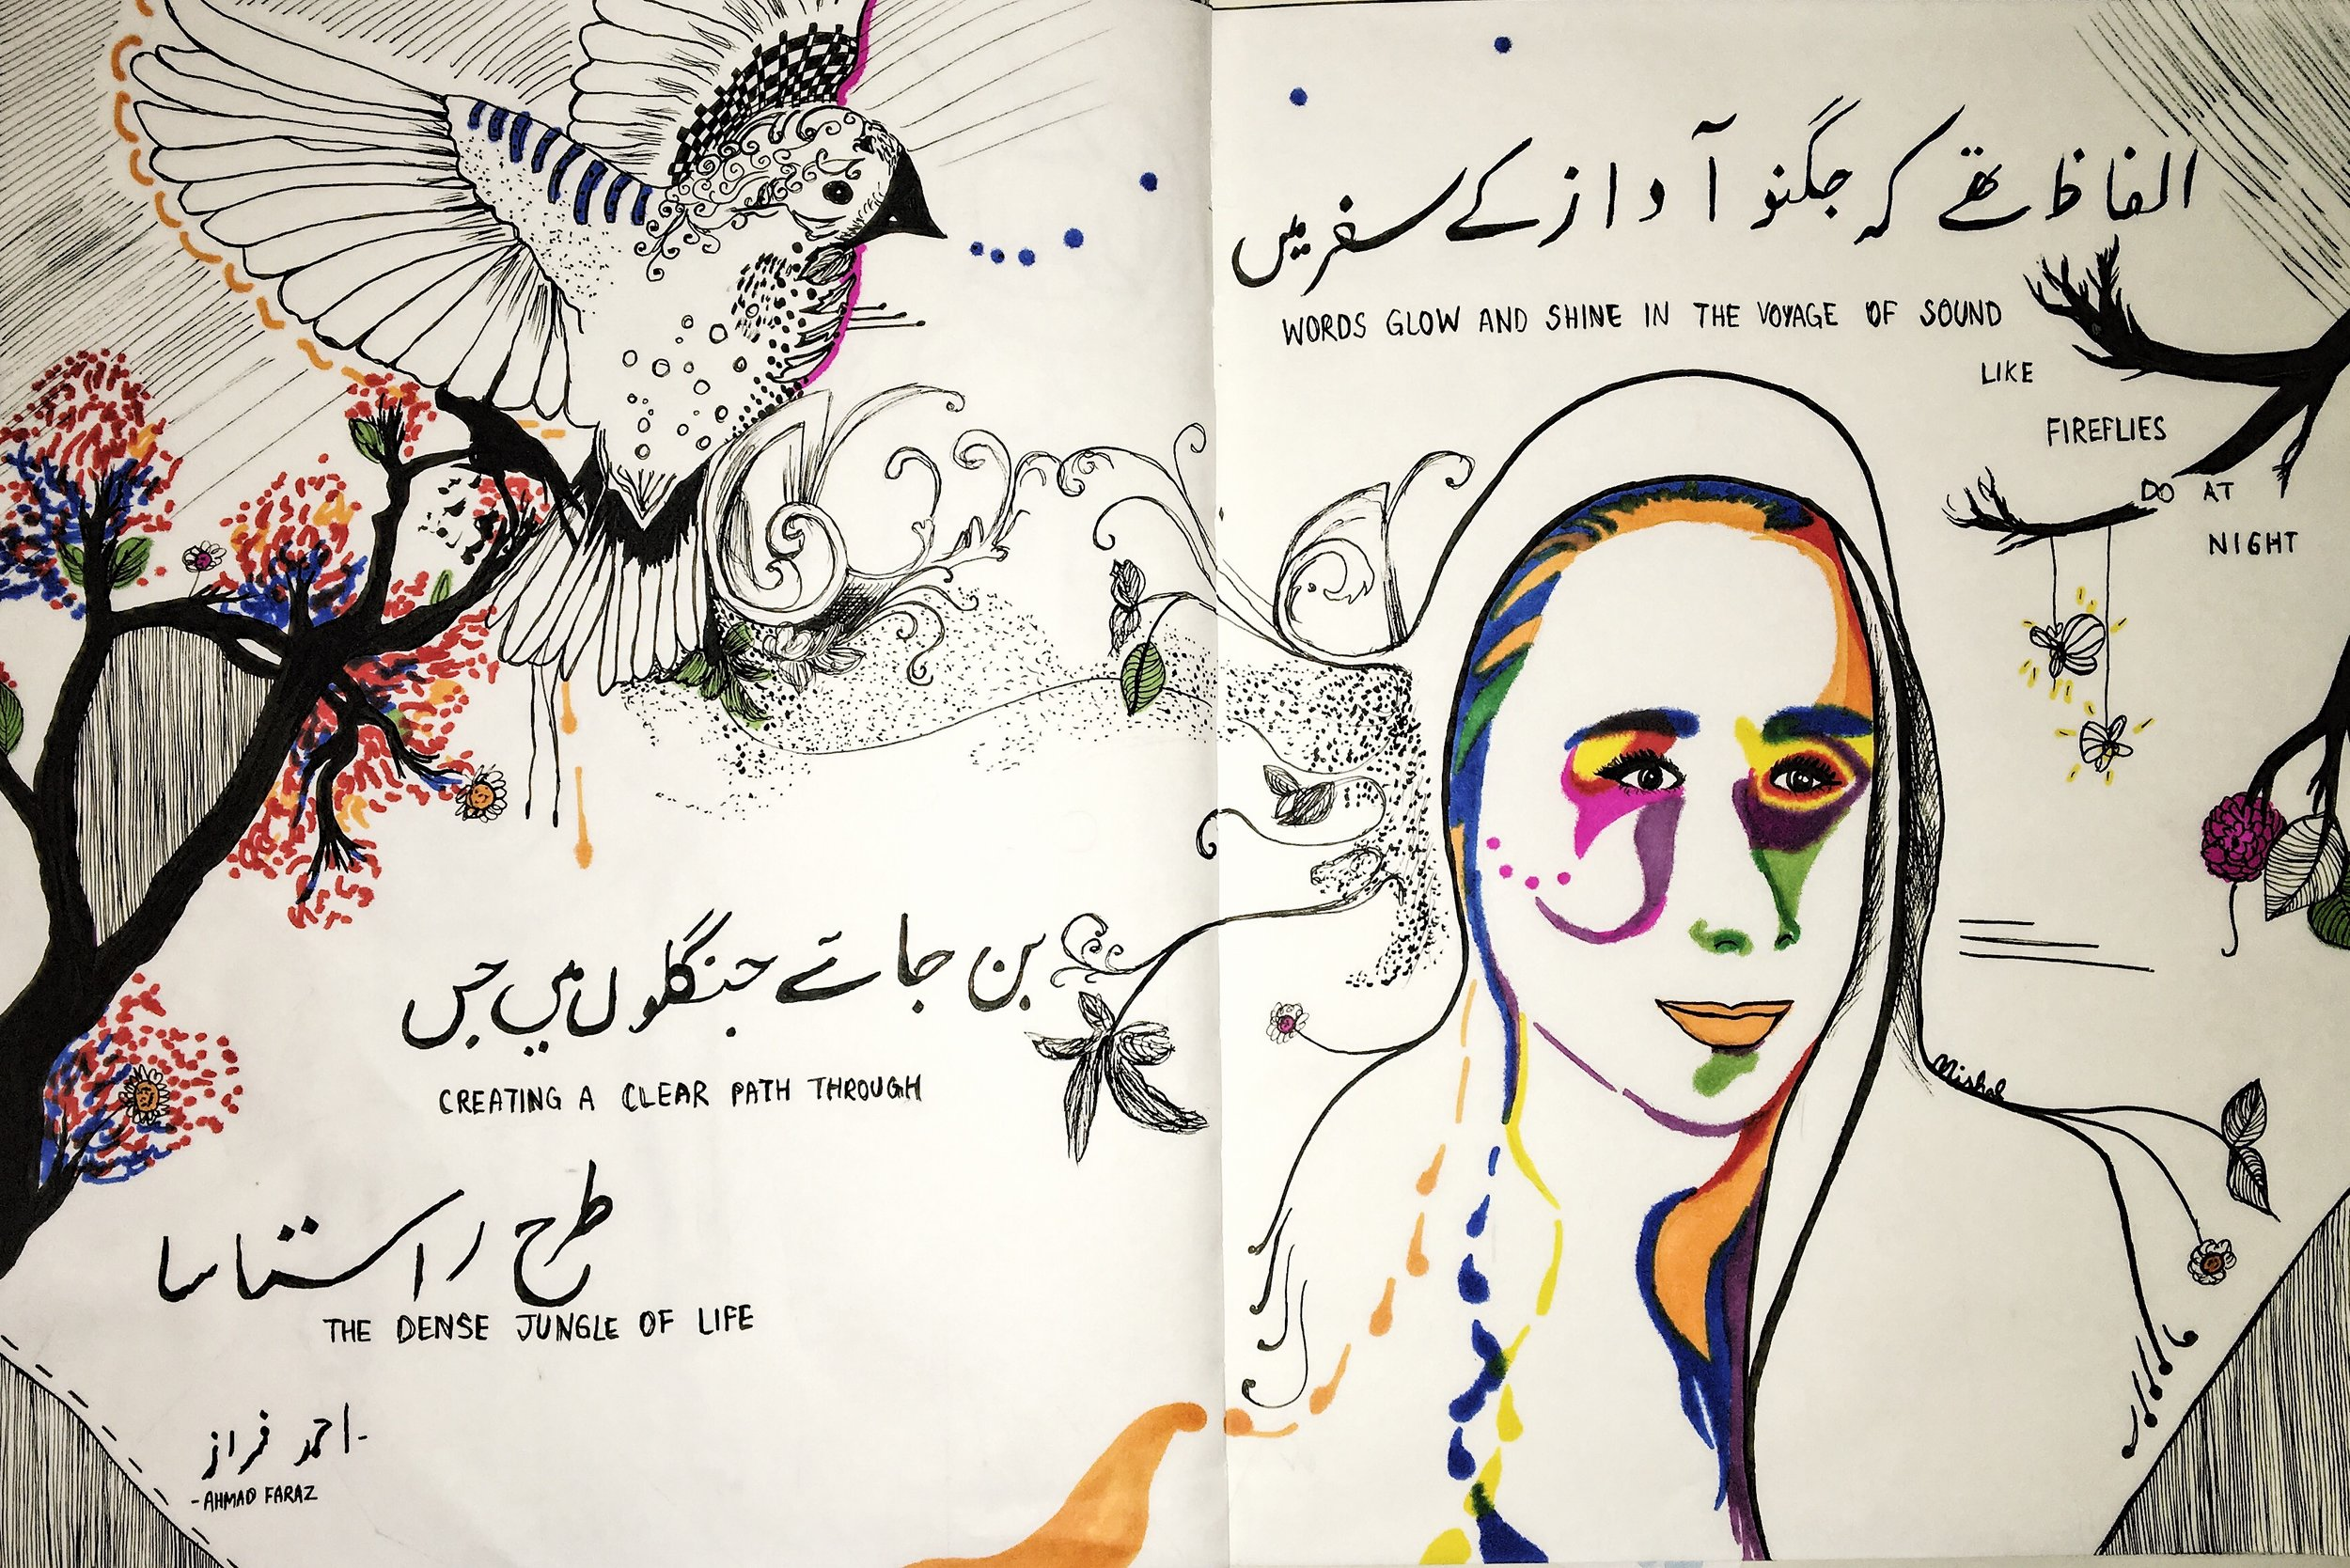 2. Introspection    Pen and ink   This piece was prompted by a class assignment to illustrate our identity through the combination of drawings and words. This was the first time I tried portrait abstraction which I combined with a detailed illustration of a bird on the left side, implying the potential to fly. I then incorporated a small excerpt from an Urdu poem by Ahmad Faraz as my family, especially my father have always considered Urdu poetry important.